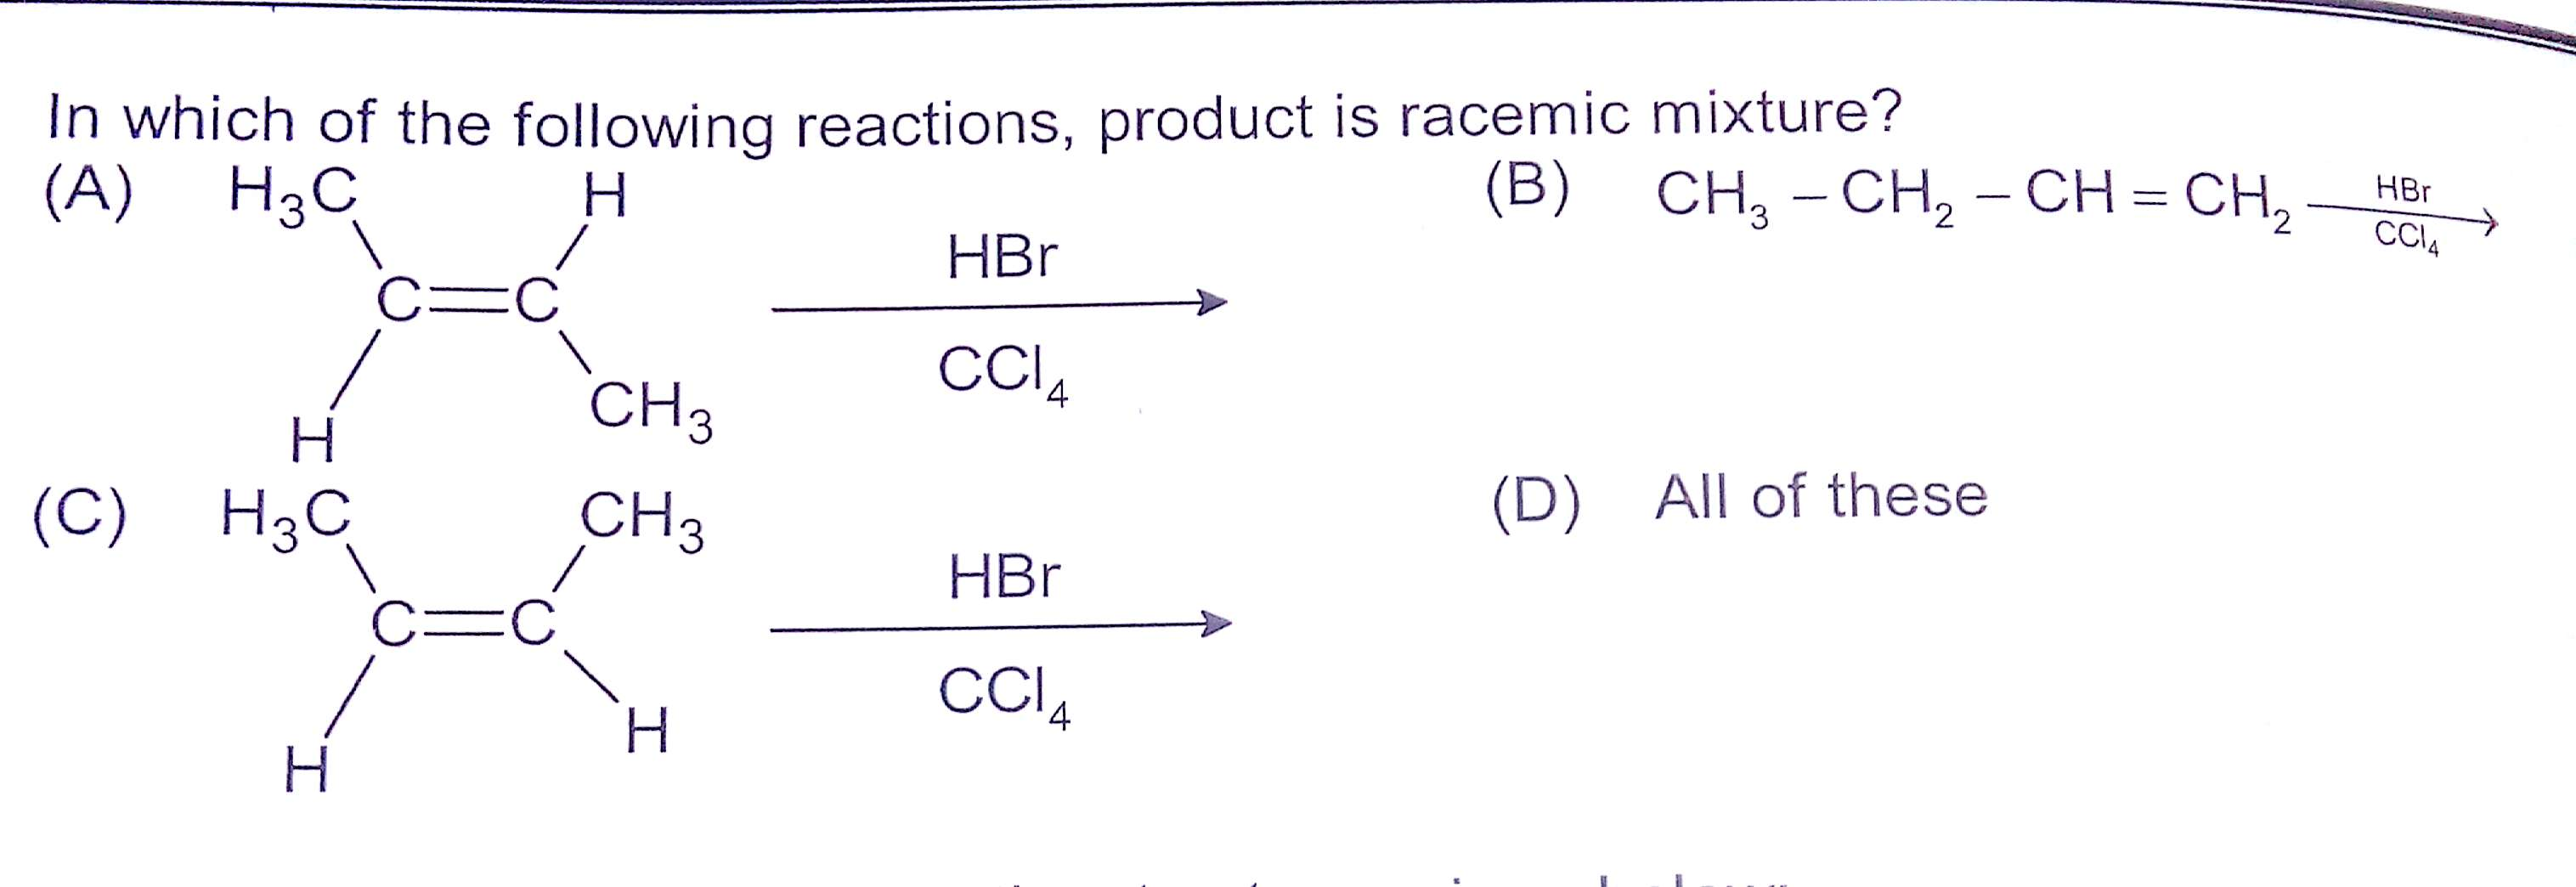 Why Do All Give Racemic Mixture Inspite Taking Ccl4 As Solvent Non Polar